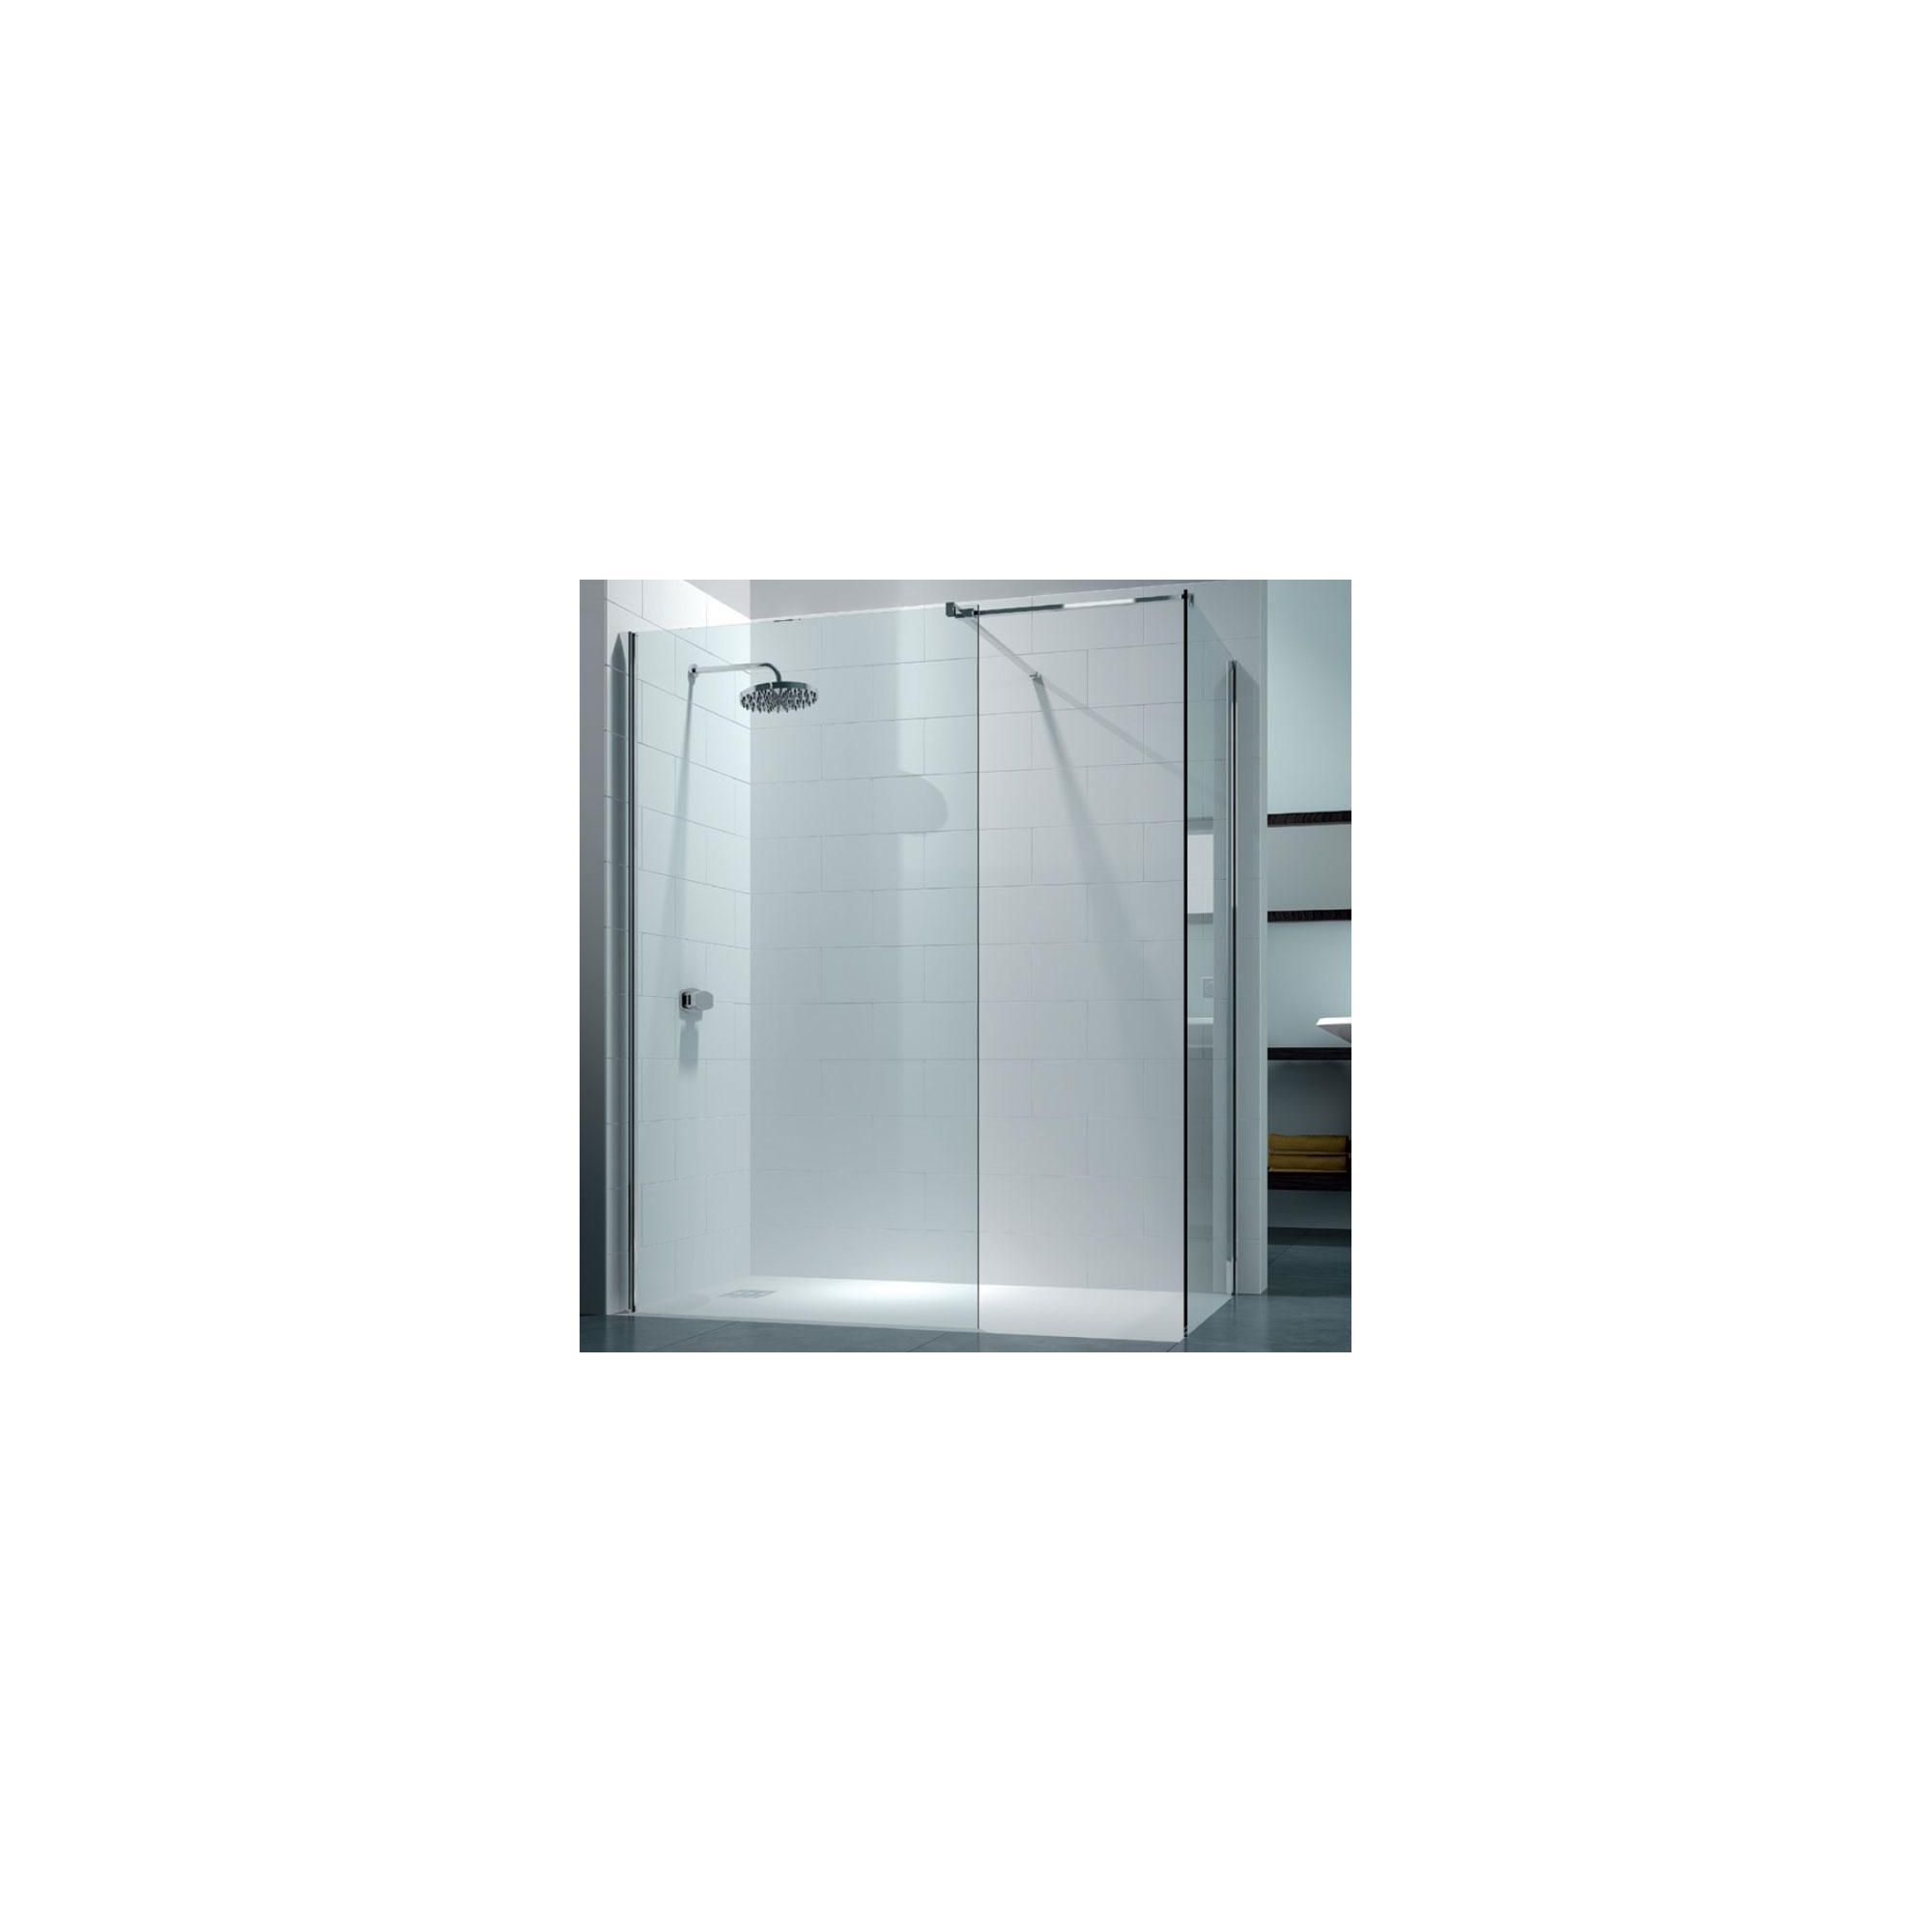 Merlyn Series 8 Walk-In Shower Enclosure, 1600mm x 900mm, 8mm Glass, excluding Tray at Tesco Direct